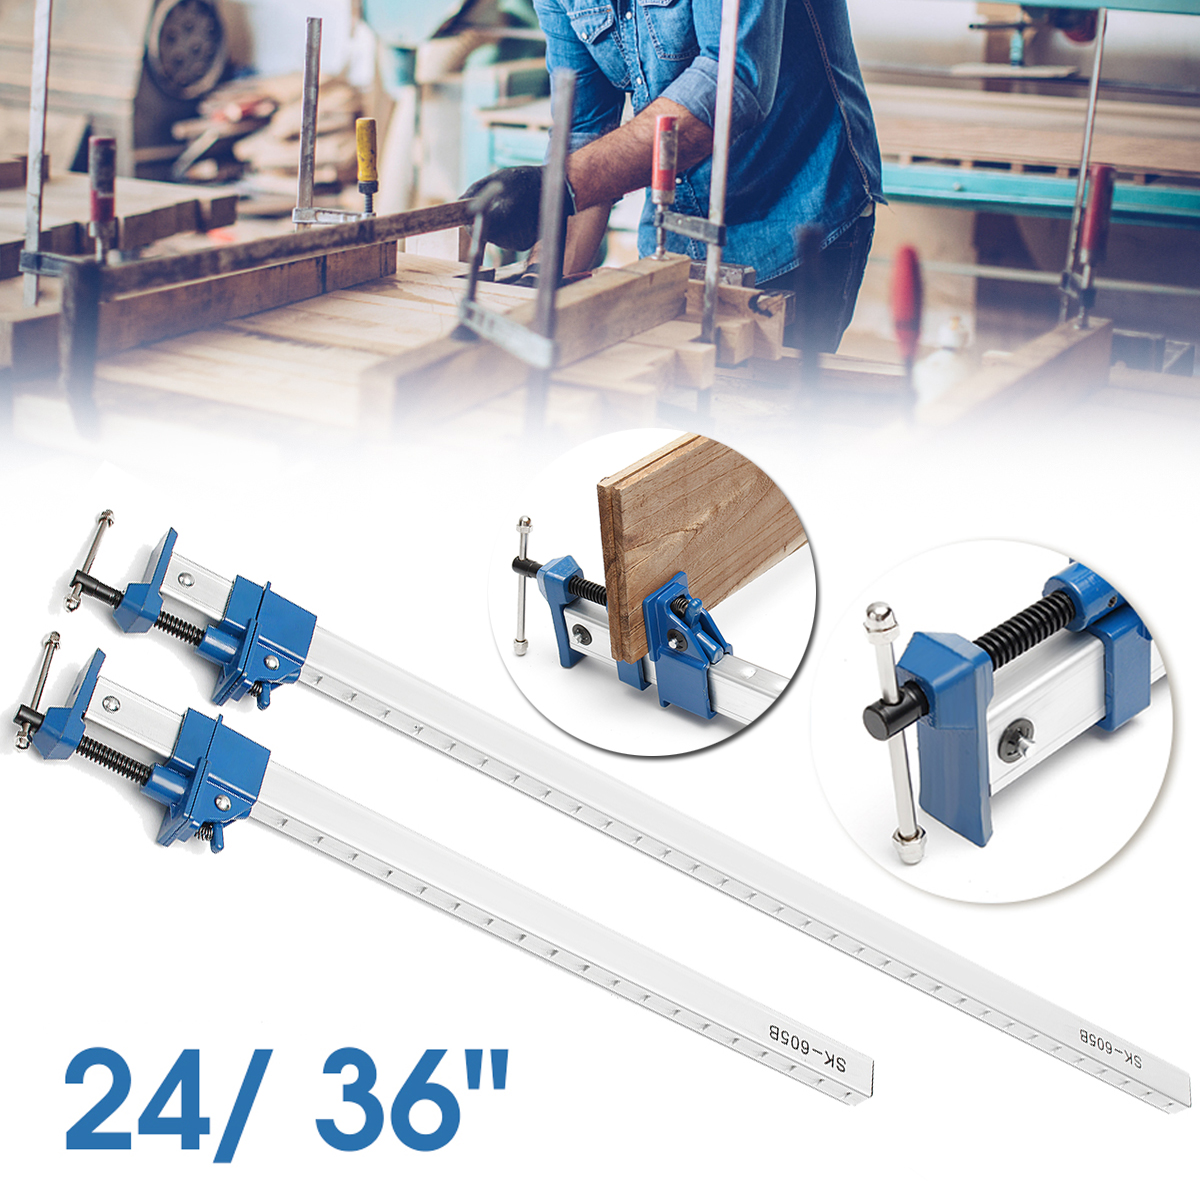 4Pcs 24/36inch Clamp T Bar Wood Clamps For Woodworking F Clamp Cramp Clip Grip Quick Release Wood Holder Hand DIY Tools